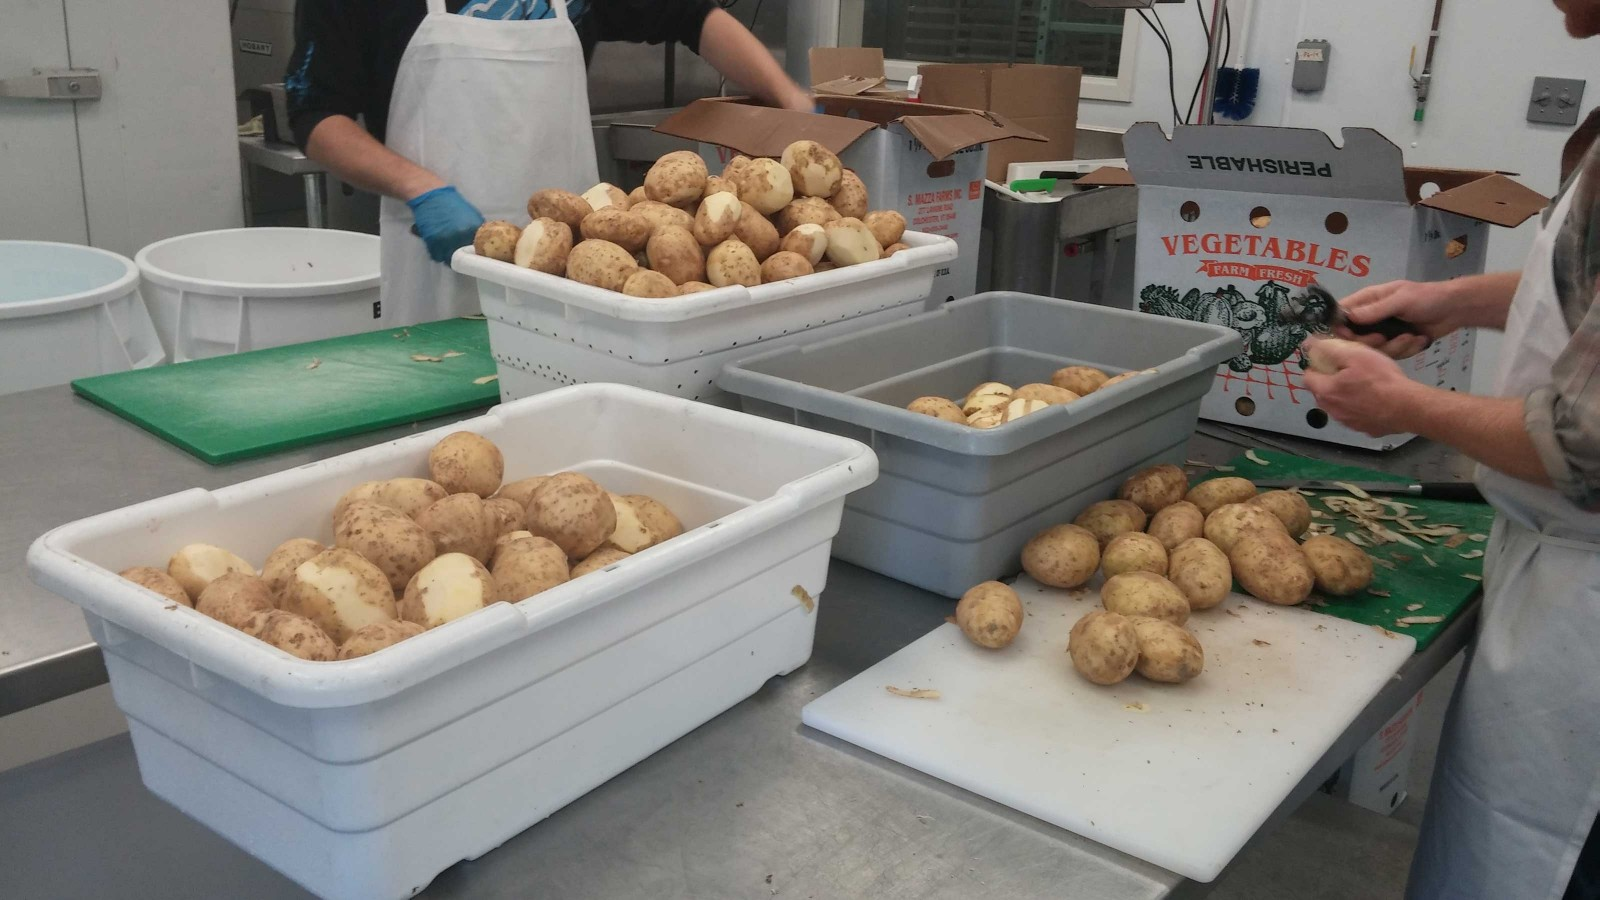 The Vermont Food Venture Center provides the staffing and space necessary for processing large quantities of food, like these locally grown potatoes, into storable goods and valuable donations.